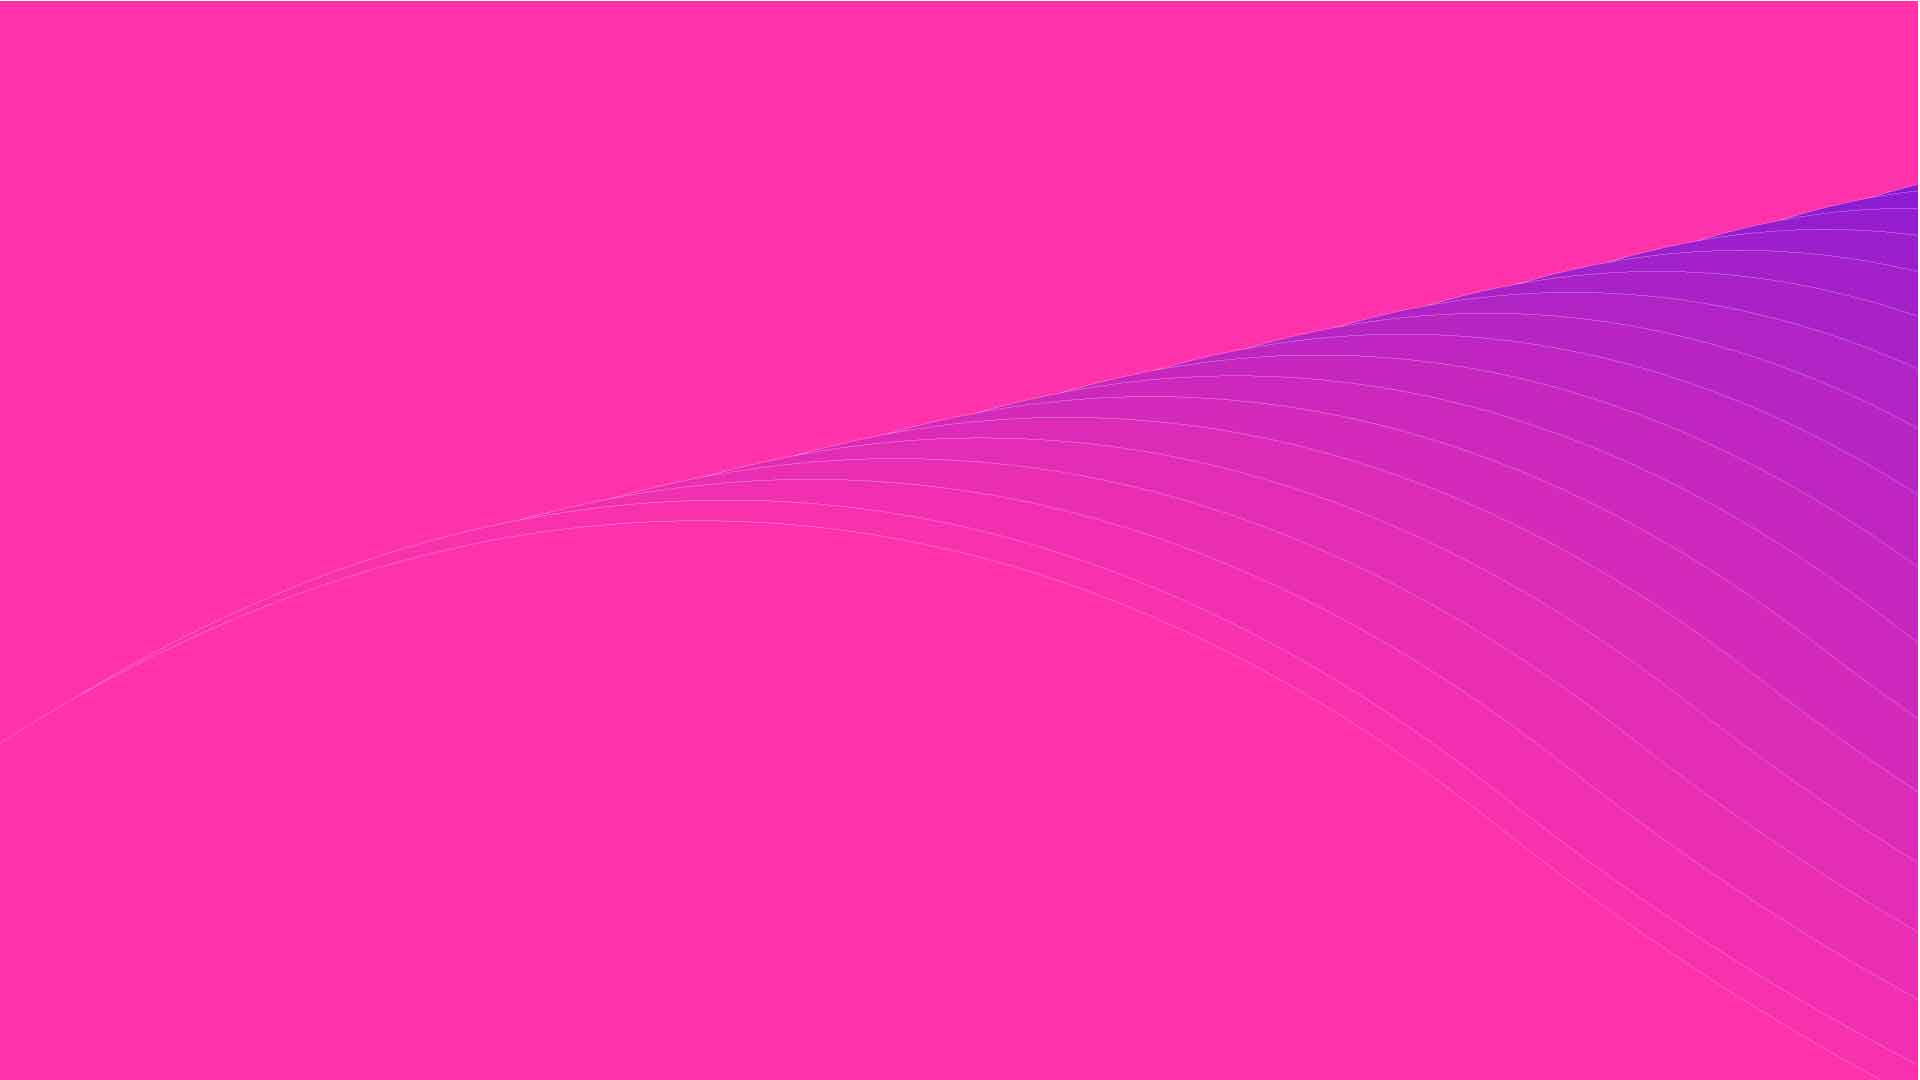 Pink curve neutral abstract background